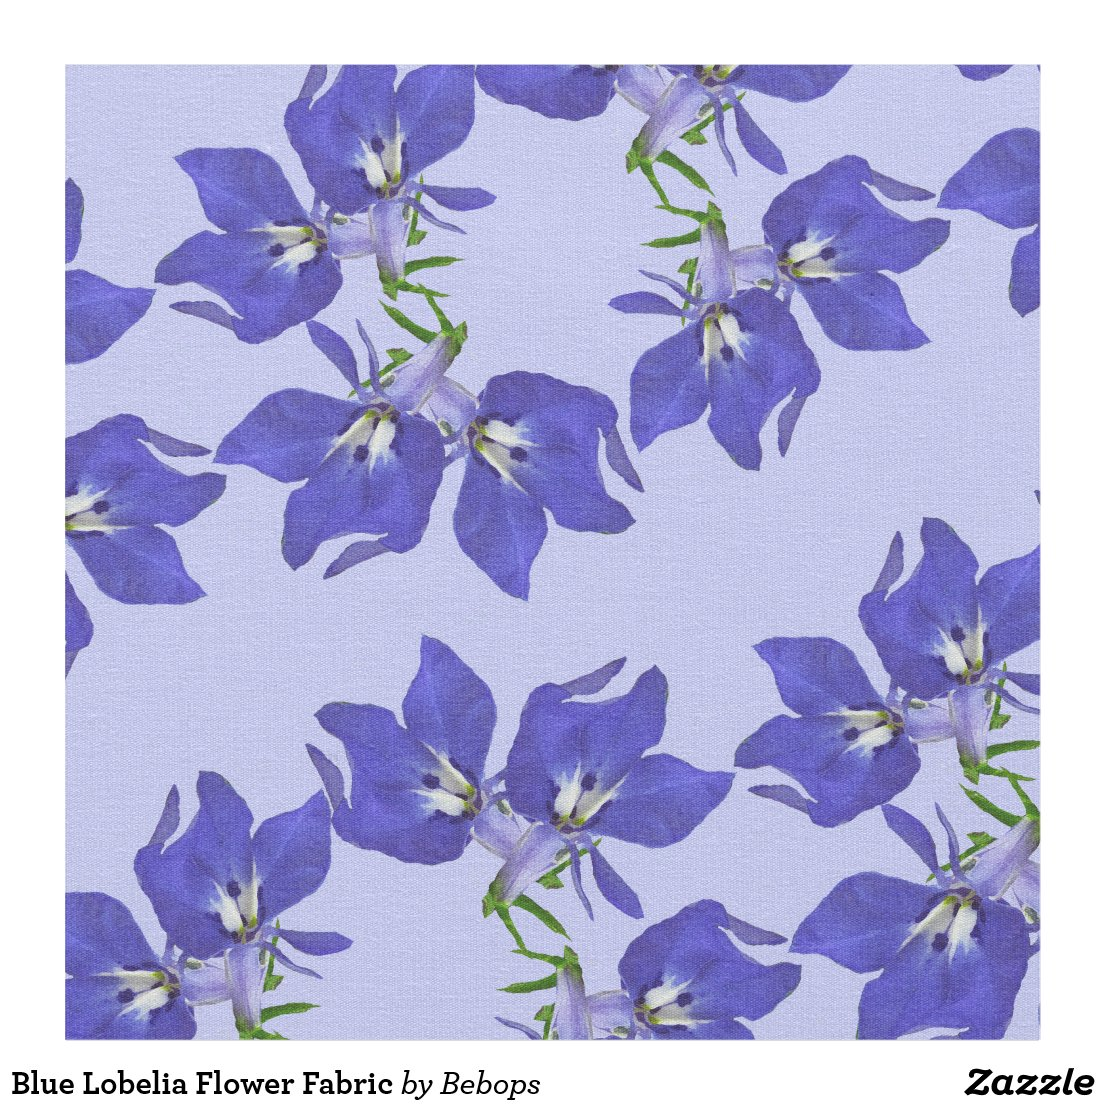 Blue Lobelia Flower Fabric